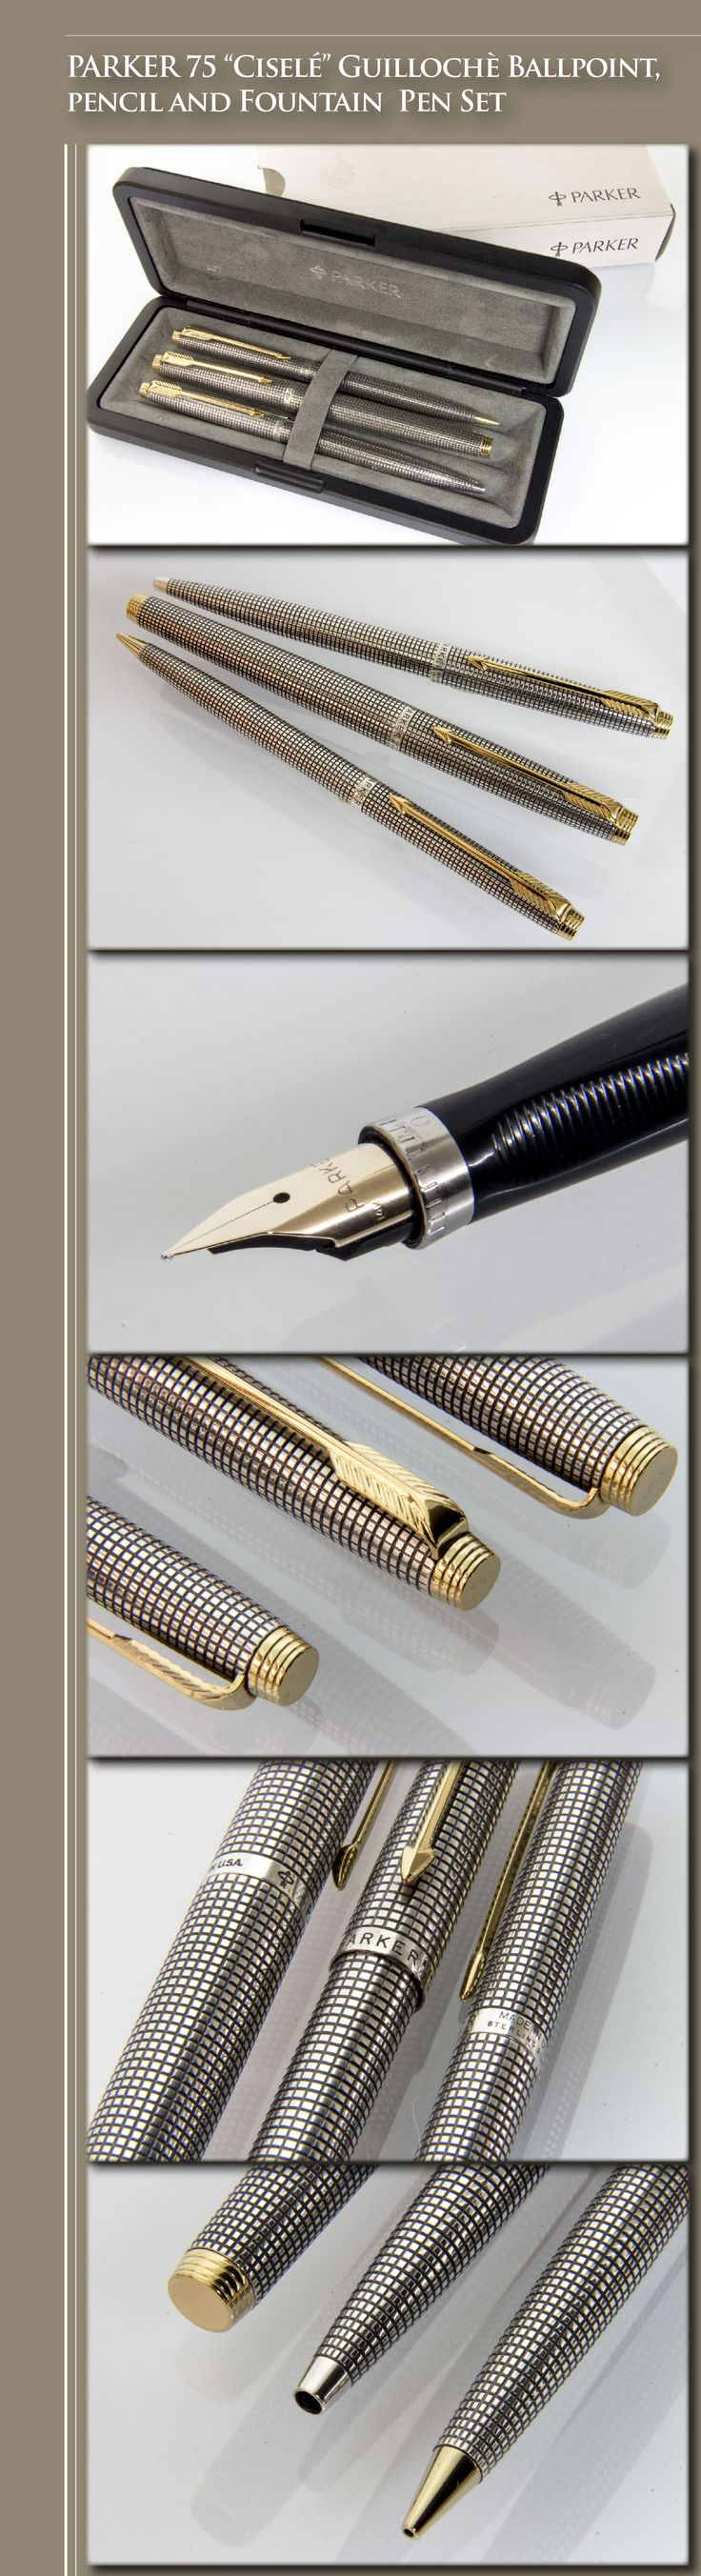 "PARKER 75 ""Ciselé Guillochè Ballpoint, Pencil and Fountain Pen Set (body in sterling silver, gold-plated trim, 14kt gold nib) - 1970s / USA"